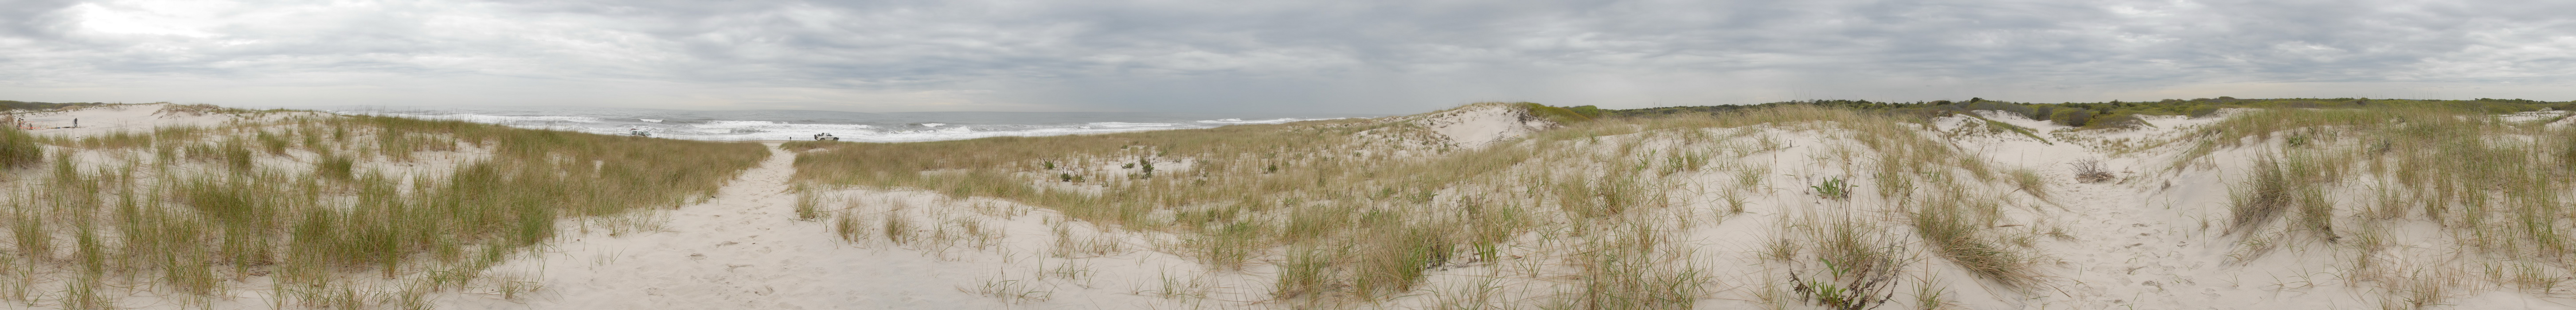 beach, dunes, ocean, panoramic, sand, water, waves